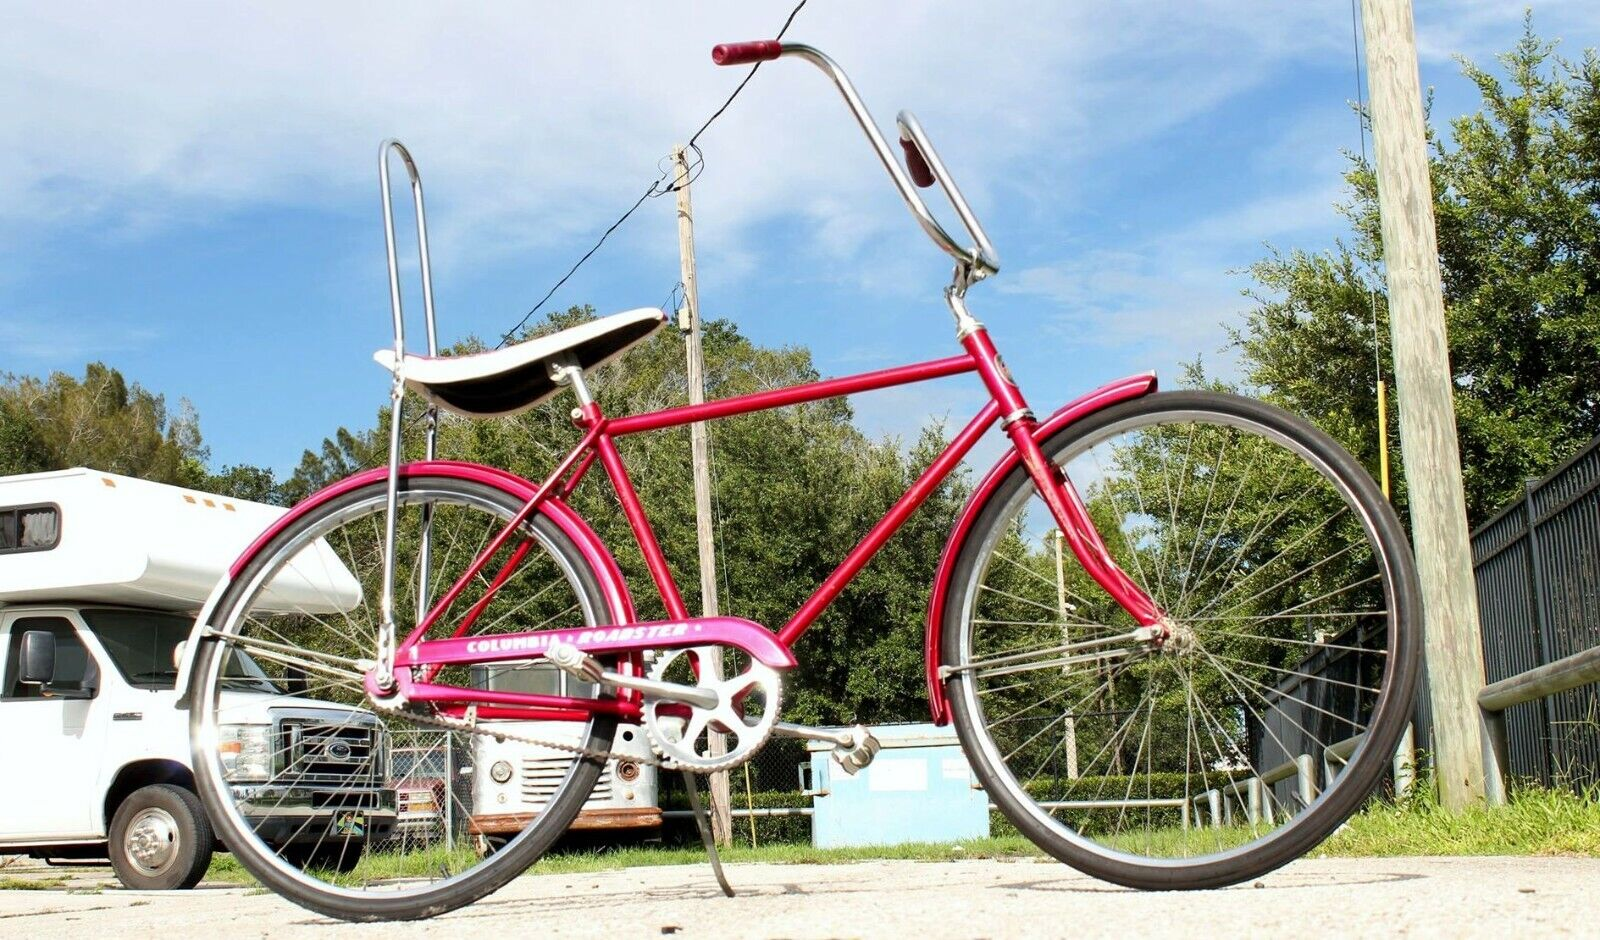 1970 Vintage Columbia Roadster Complete Bicycle Banana Seat Custom Barn Find (599 USD)